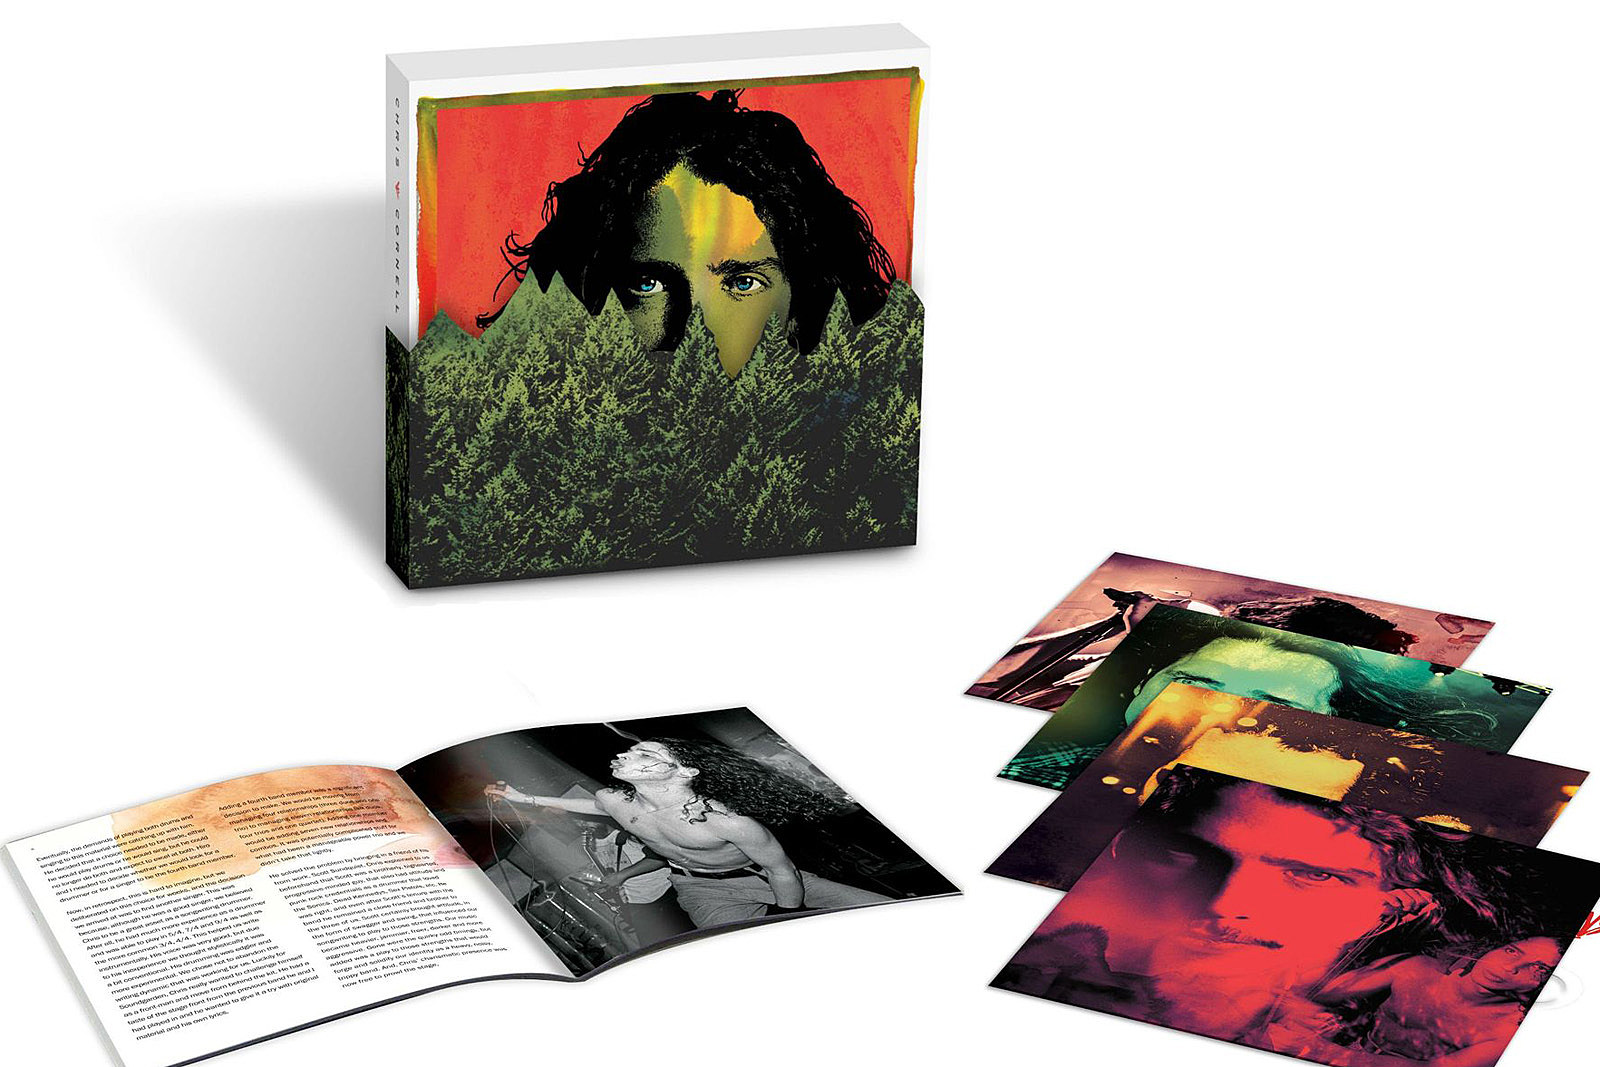 Chris Cornell Remembered in Self-Titled Legacy Album